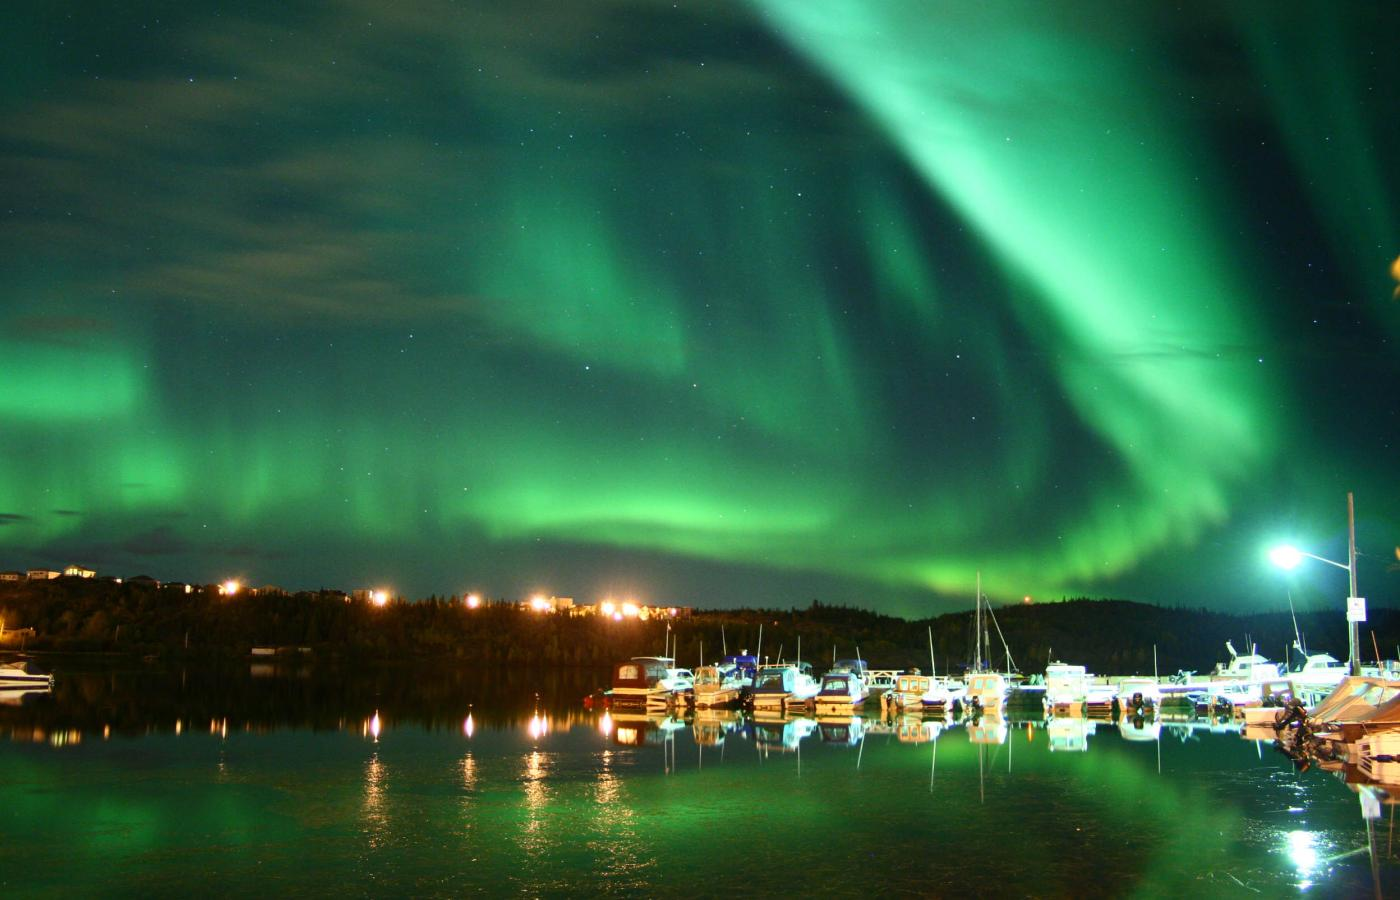 The Aurora fills the sky at Aurora Village in the NWT and is reflected in a lake